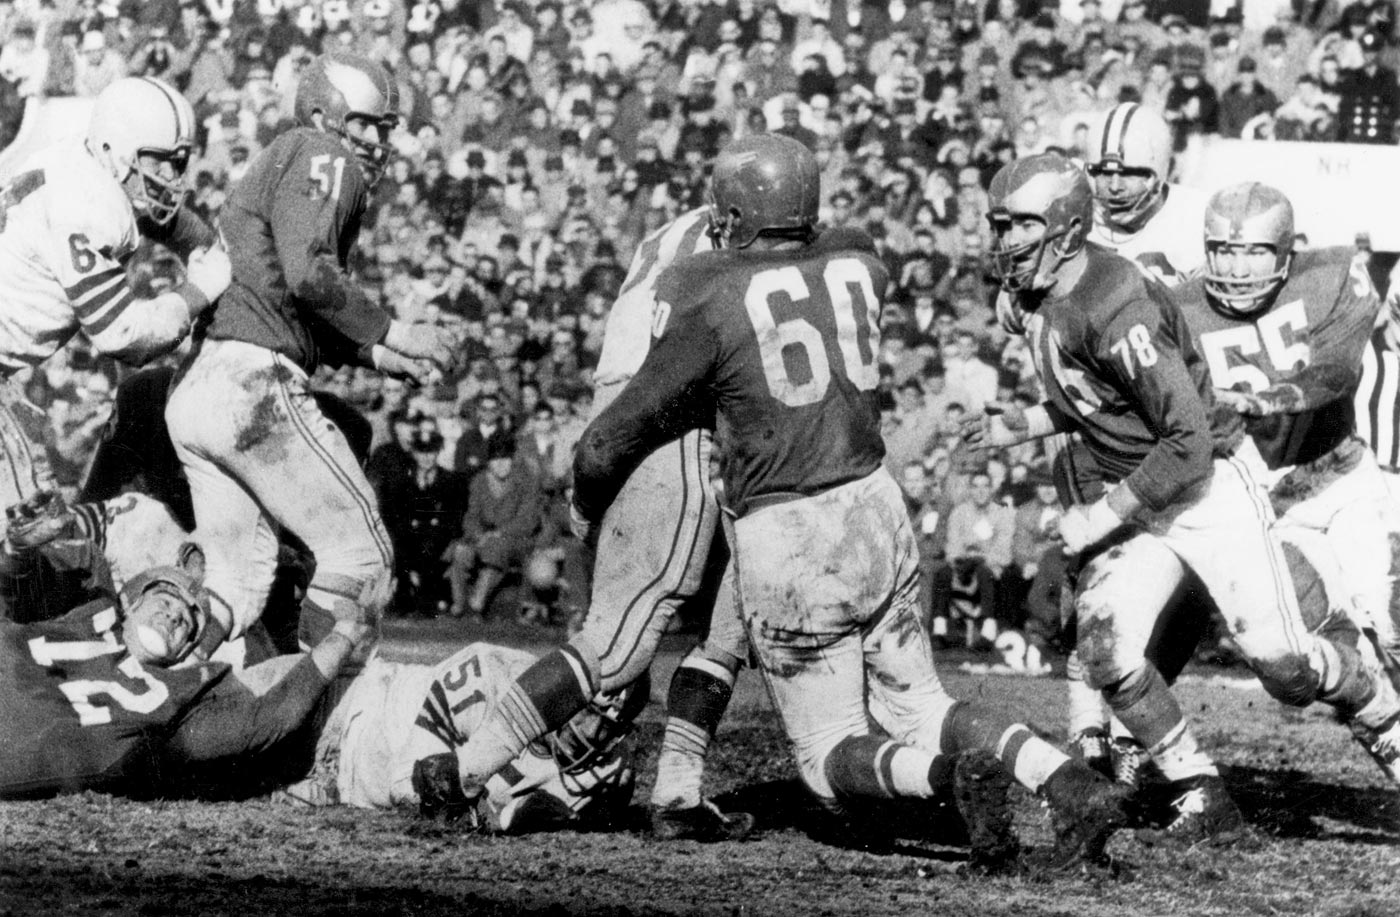 Vince Lombardi suffered his only playoff defeat thanks to brutish linebacker Chuck Bednarik, who tackled Green Bay fullback Jim Taylor at the 10-yard line with seconds remaining and held him down until the clock ran out.